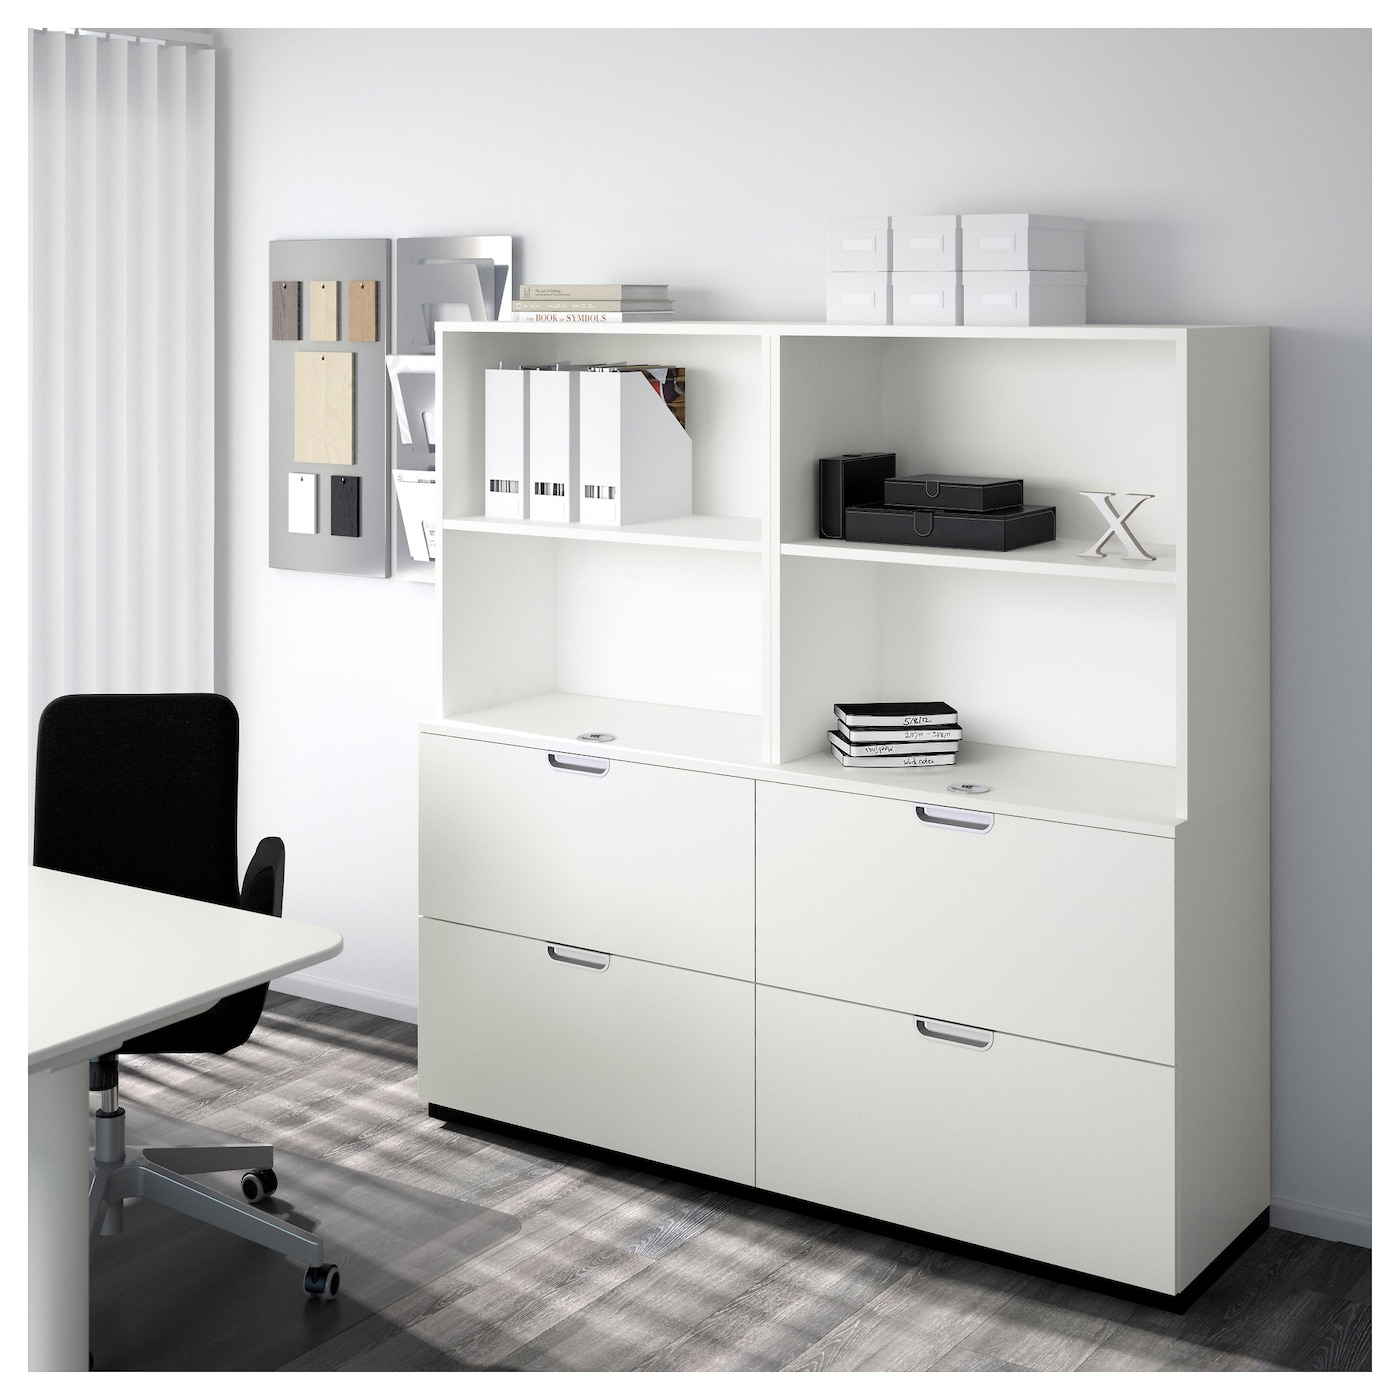 ikea office storage. Galant Storage Combination With Filing White 160x160 Cm Ikea Office S